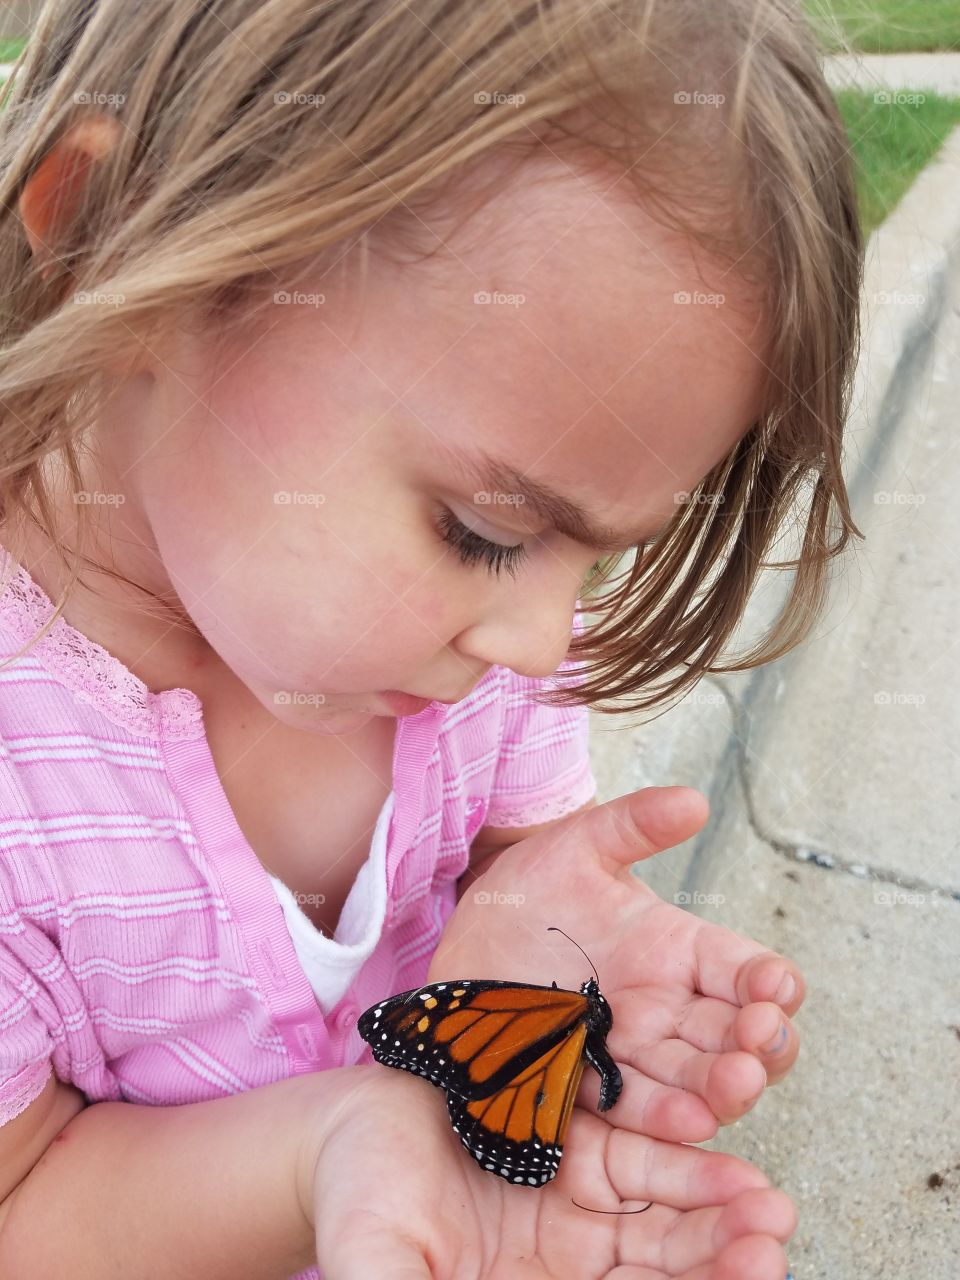 Close-up of girl's hand with butterfly